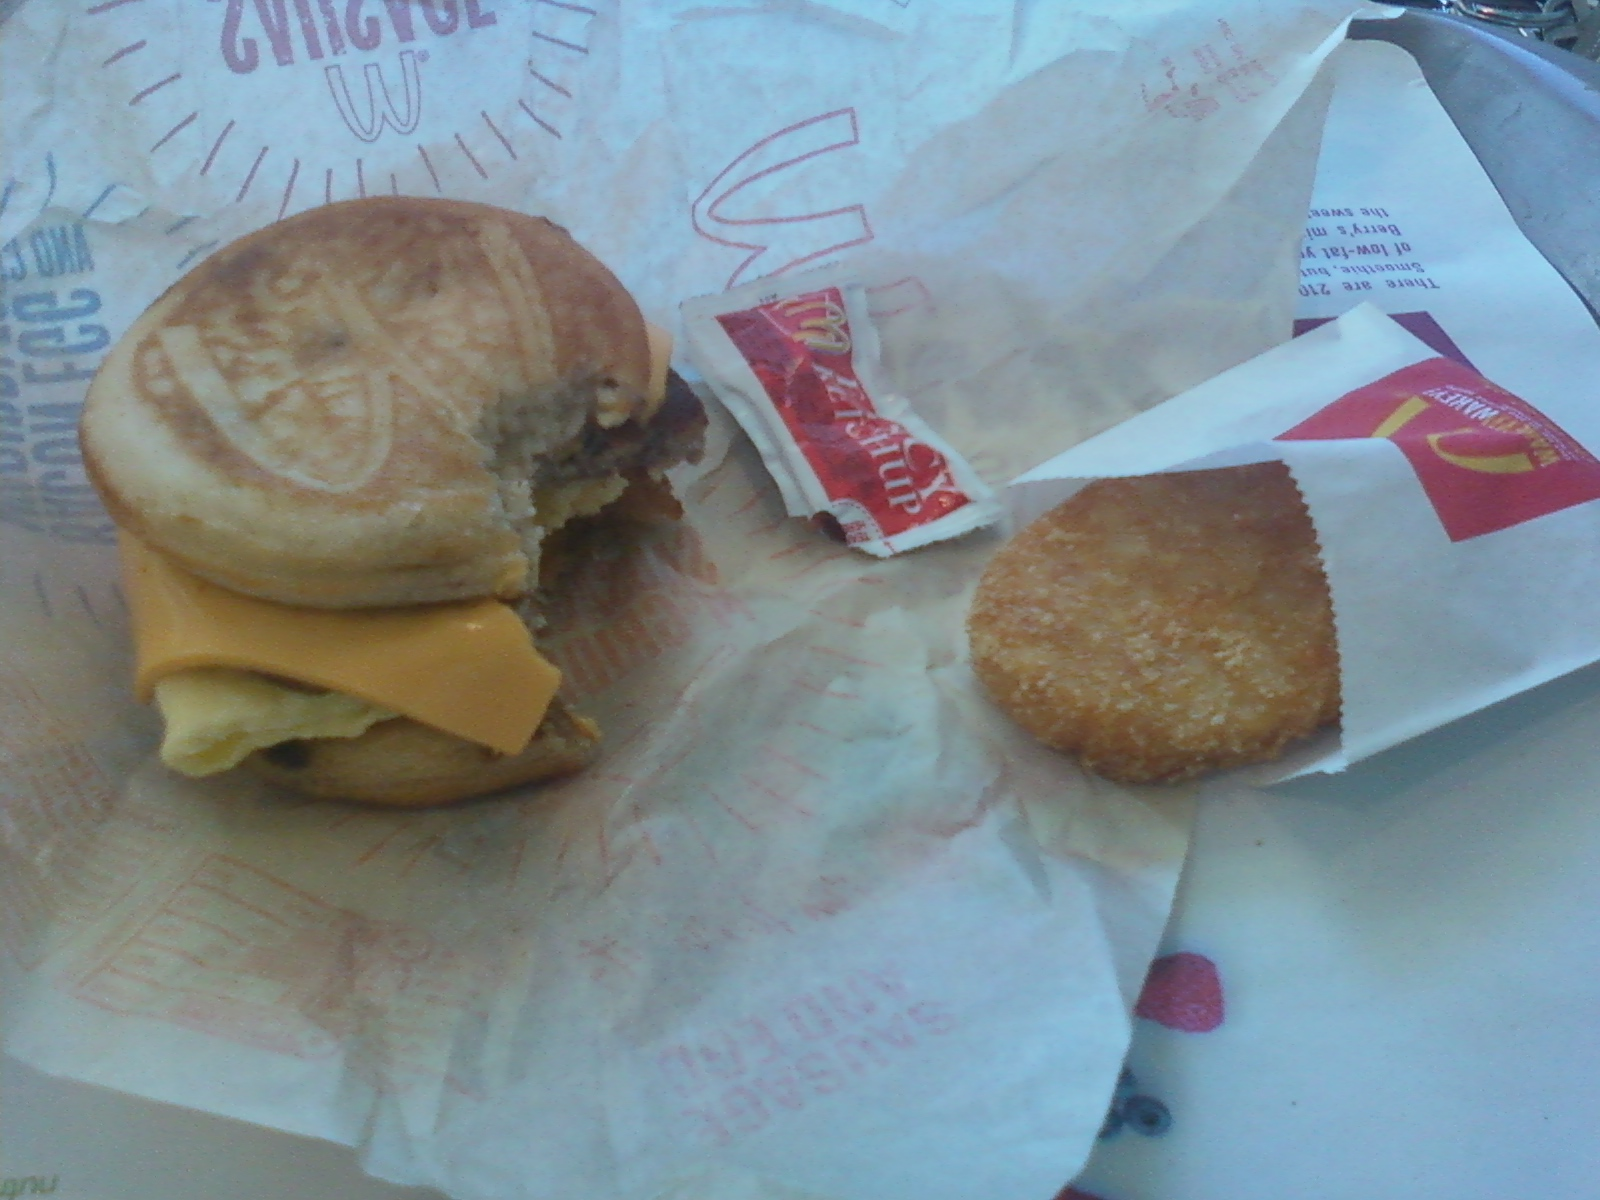 Merrimack, NH, USA :: I do love the McDonald's McGriddle with a hashbrown and sweet tea.